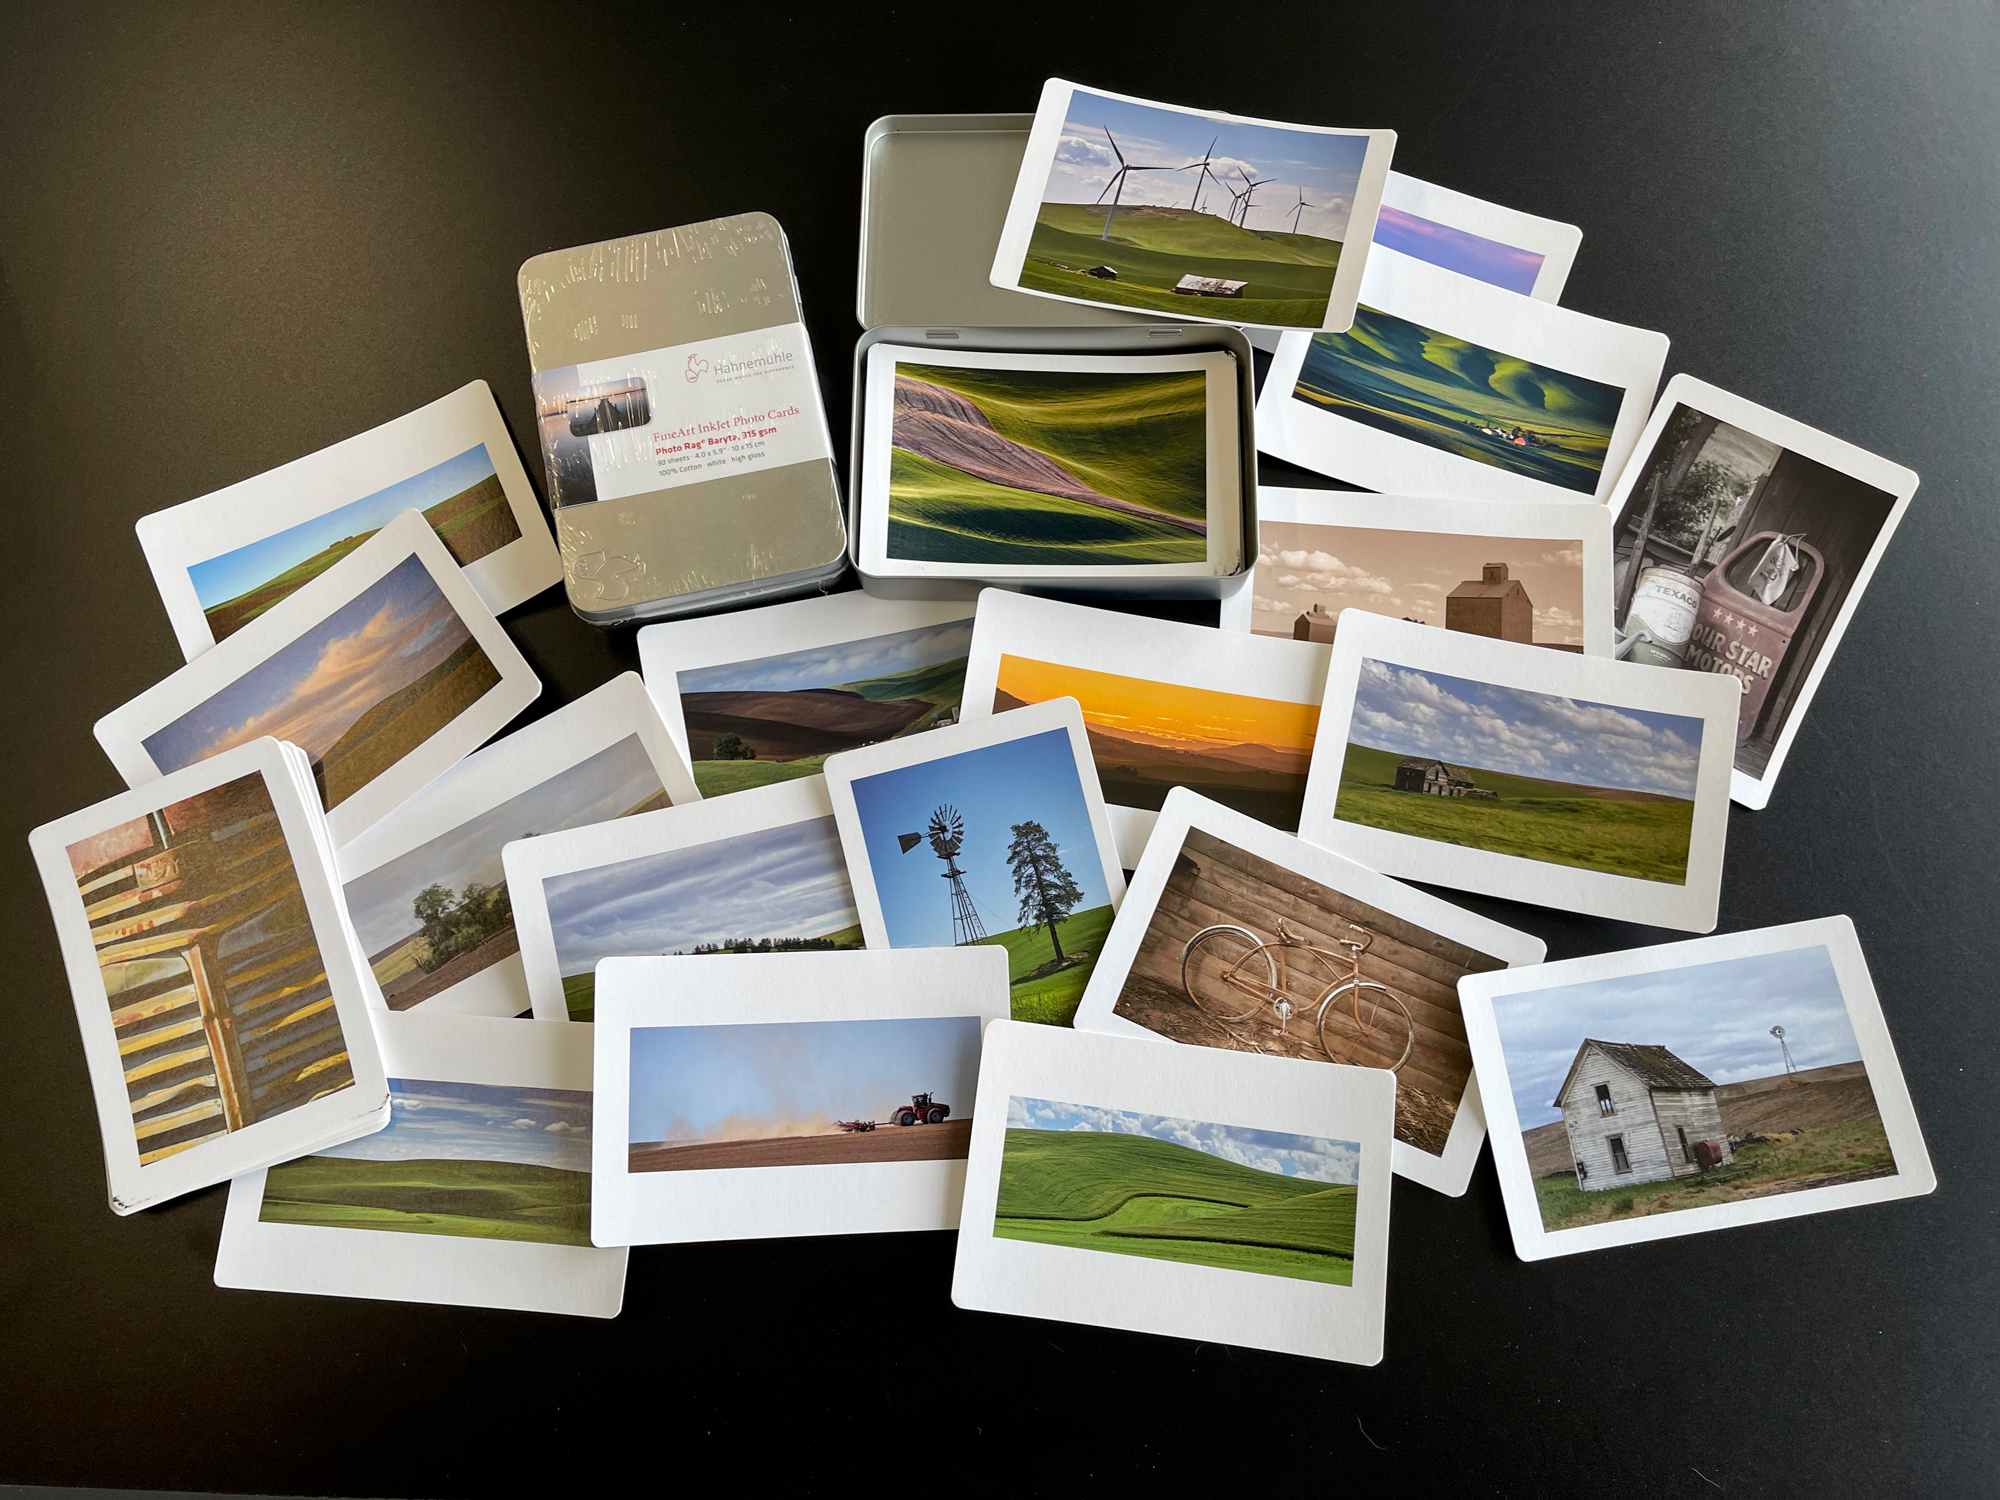 This printer is great for printing on Hahnemuhle Fine Artn InkJet Phot Cards. I use these all the time as way of sharing my images as well as perfect gifts.